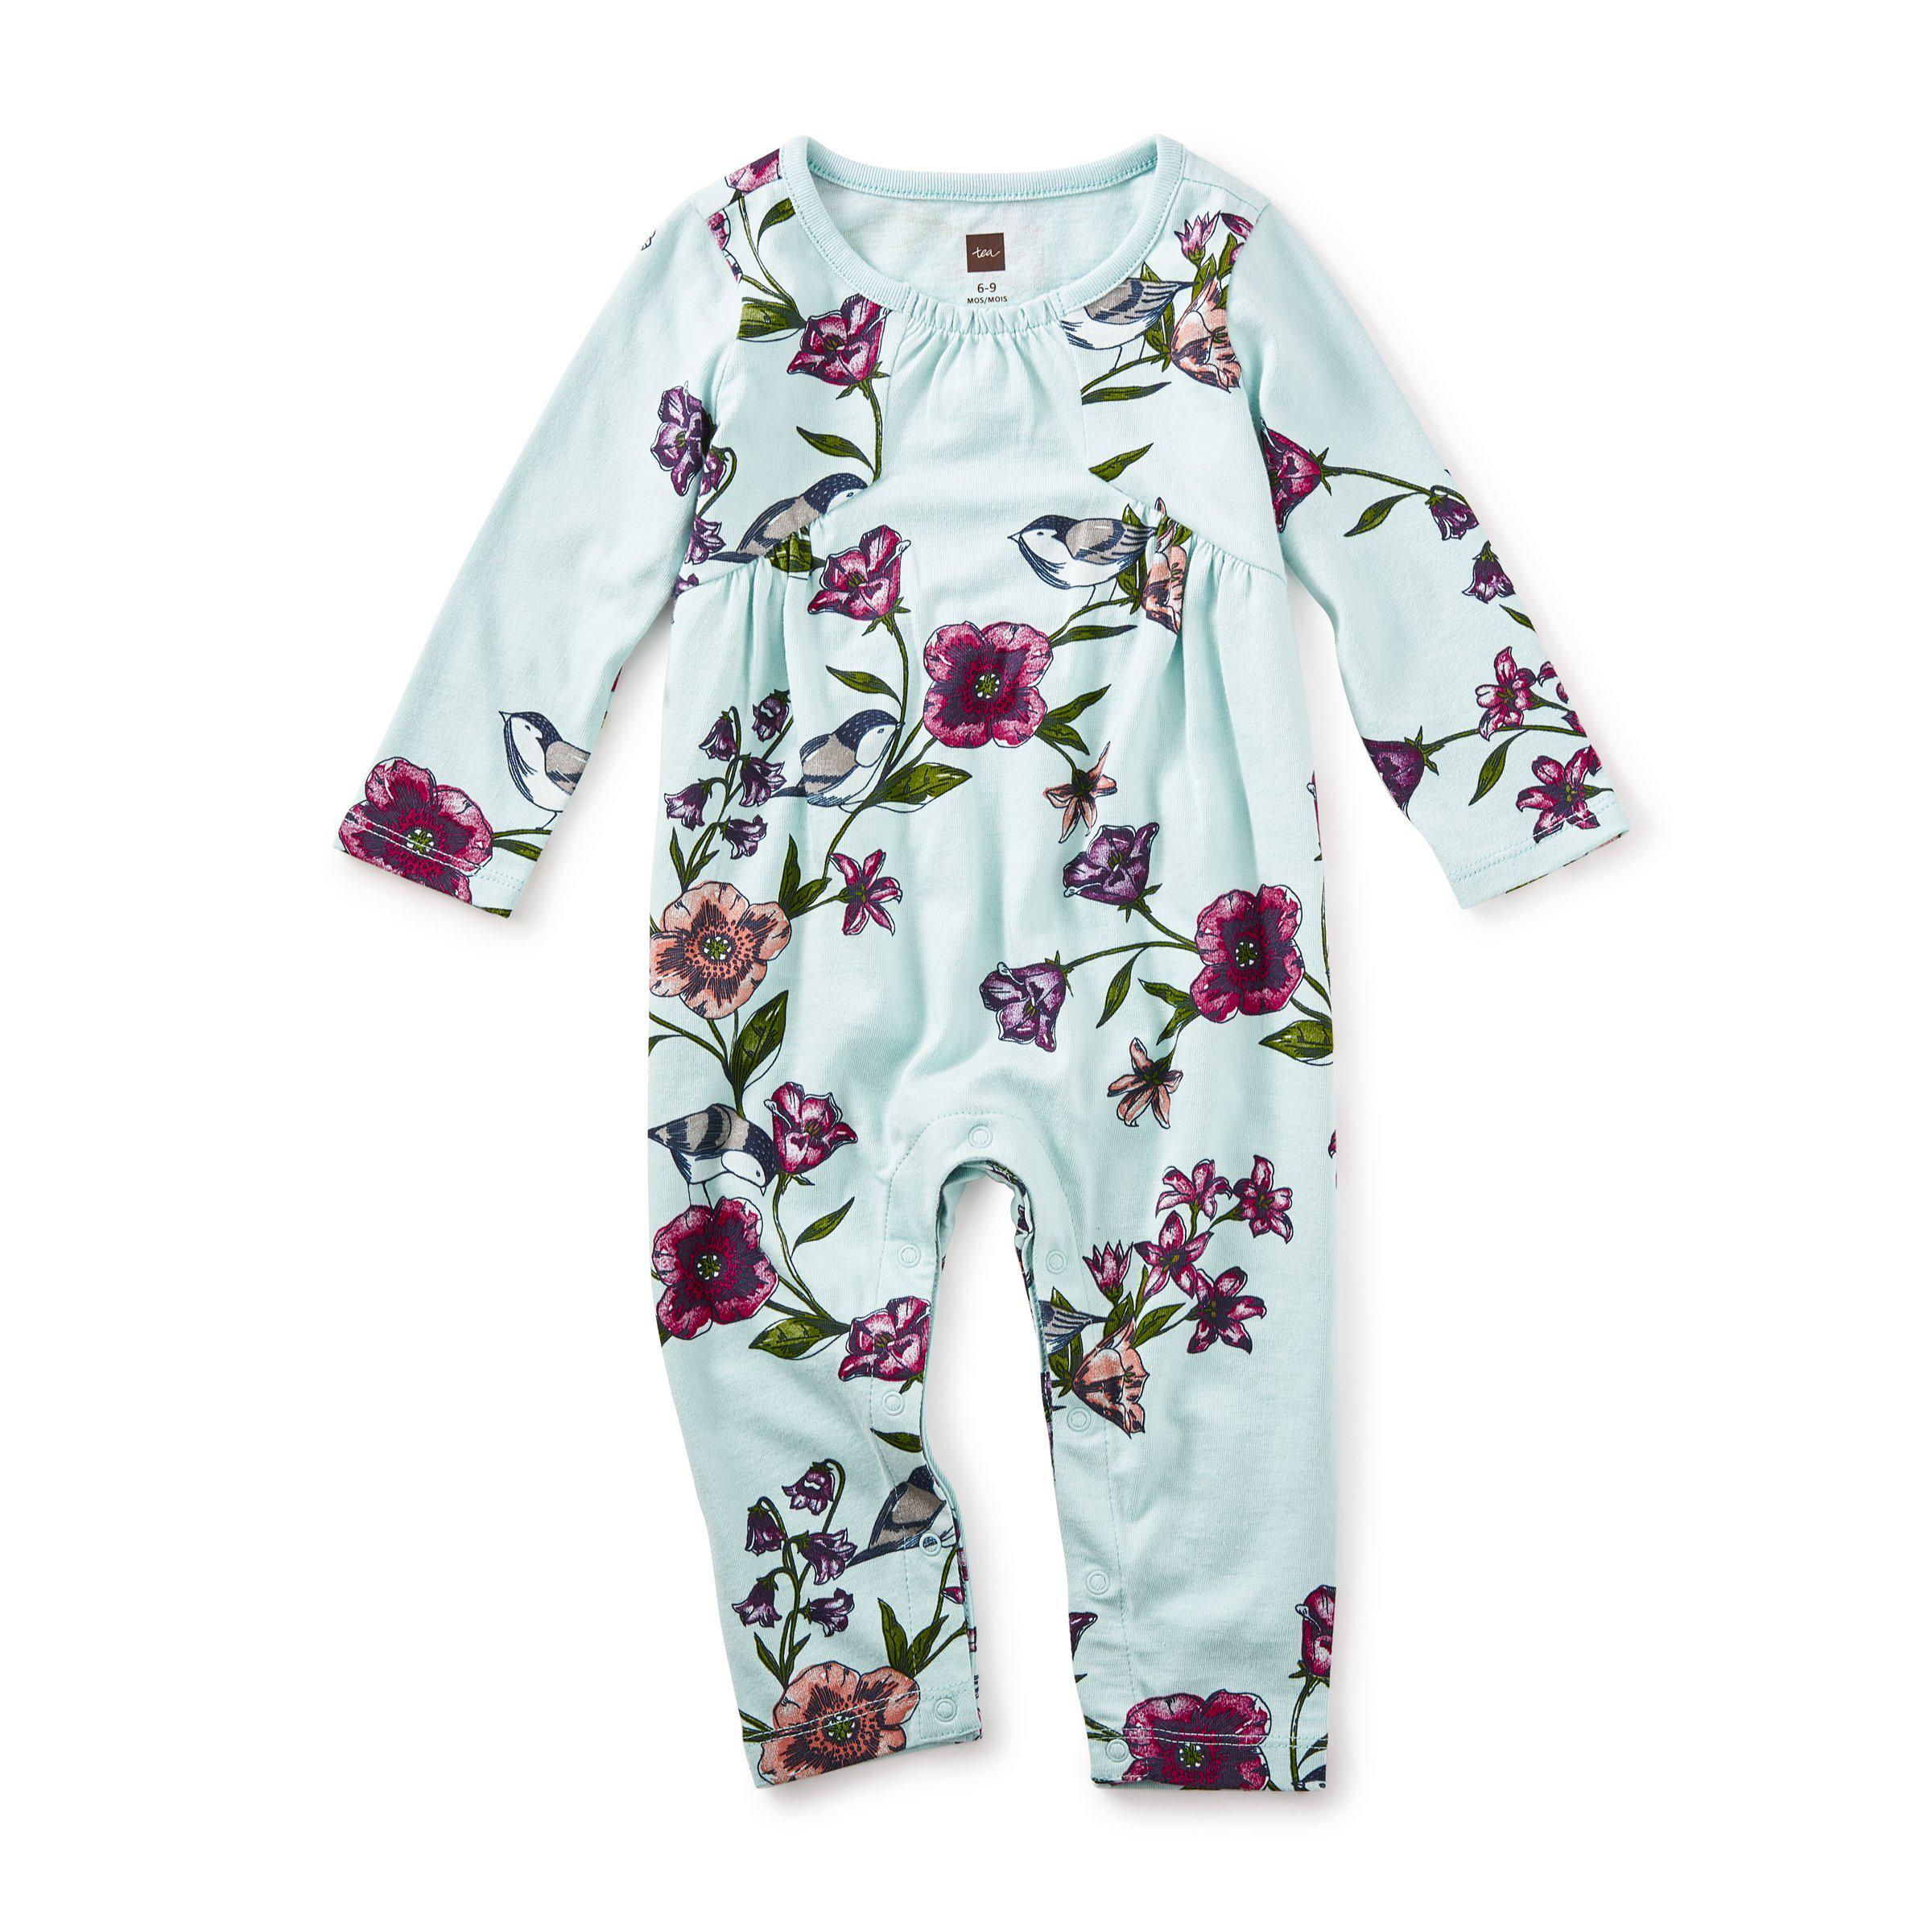 d0def5b8454 Glenna Pieced Romper-Baby Girl Apparel - Rompers-Tea Collection-6-9M